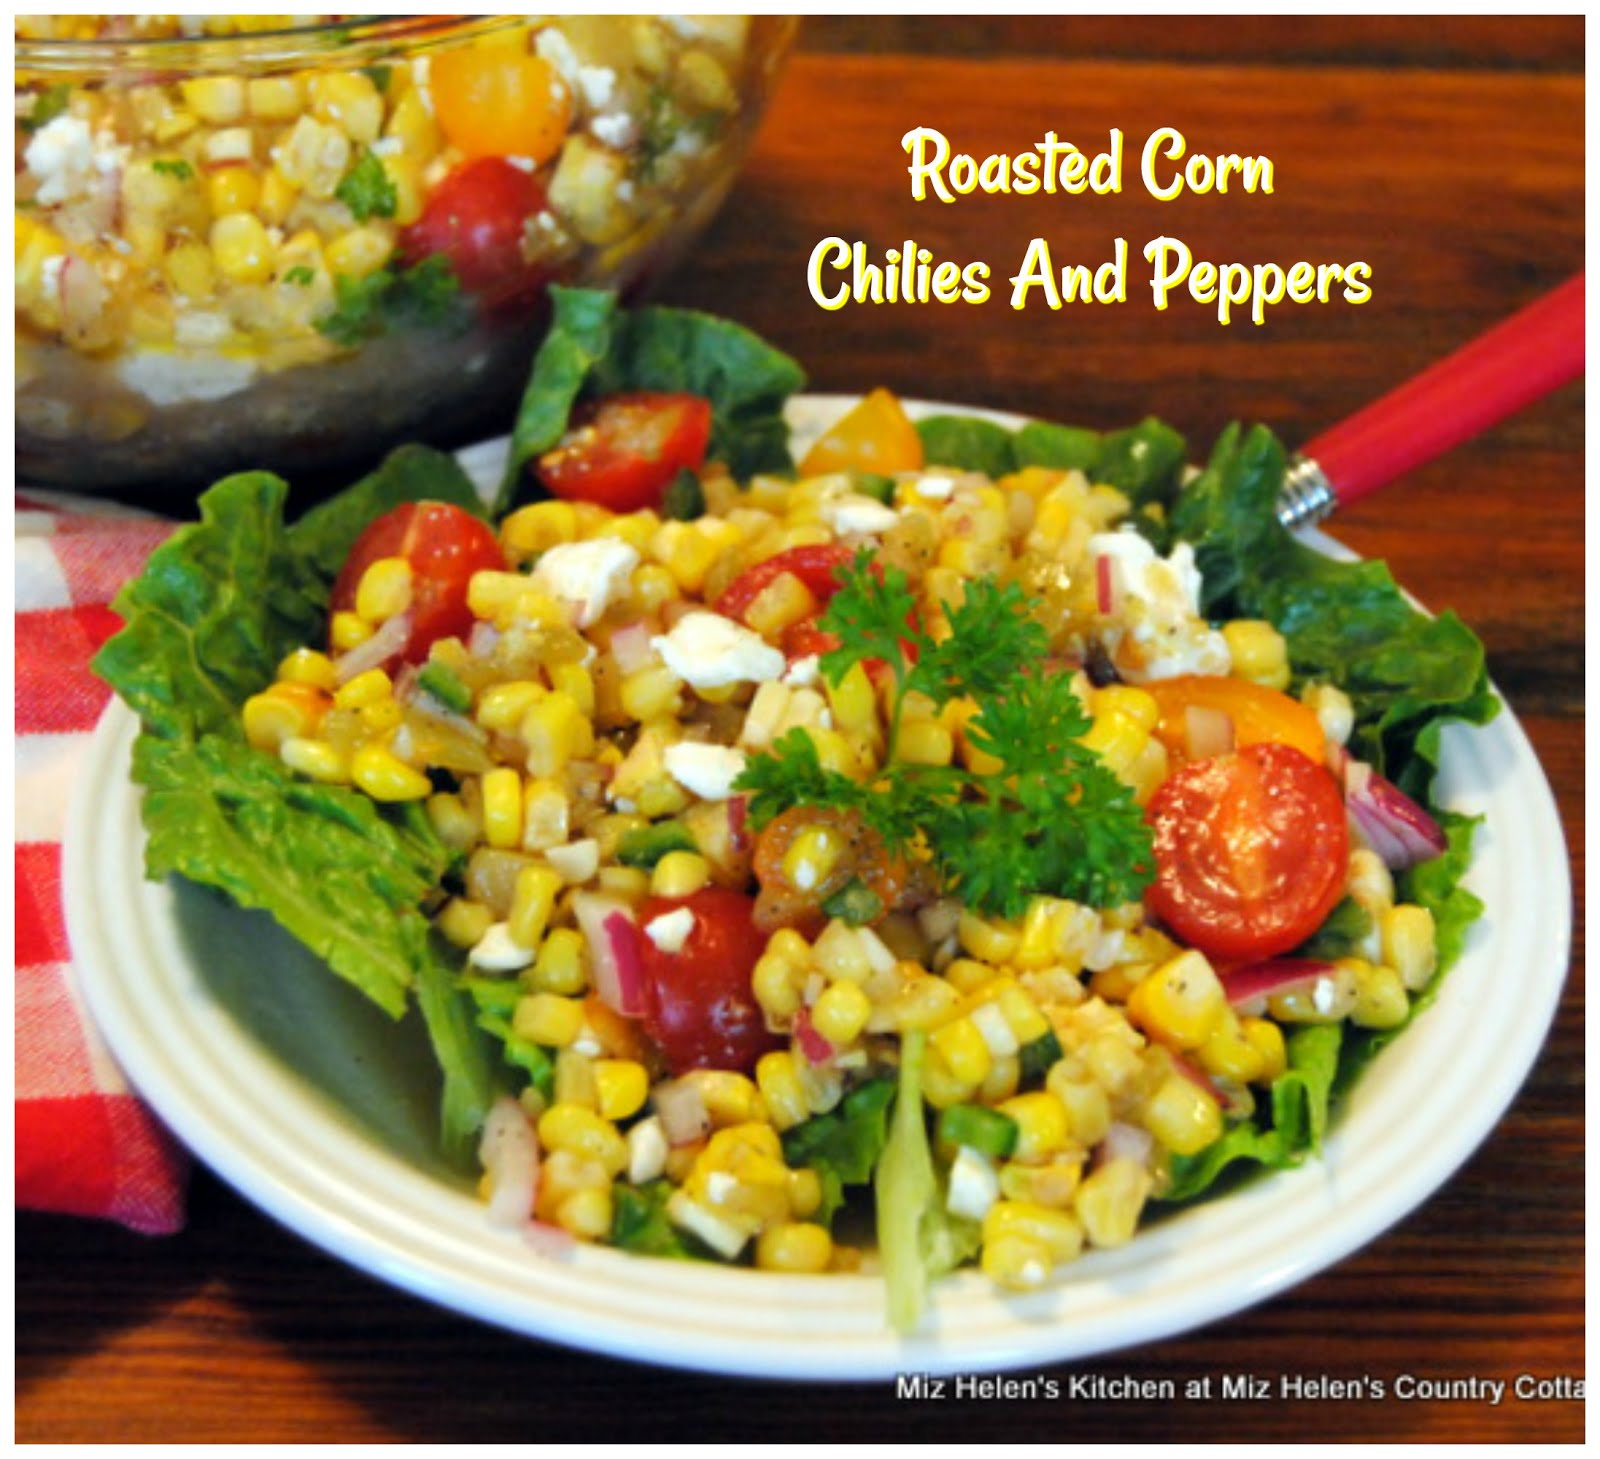 Roasted Corn Chilies and Peppers